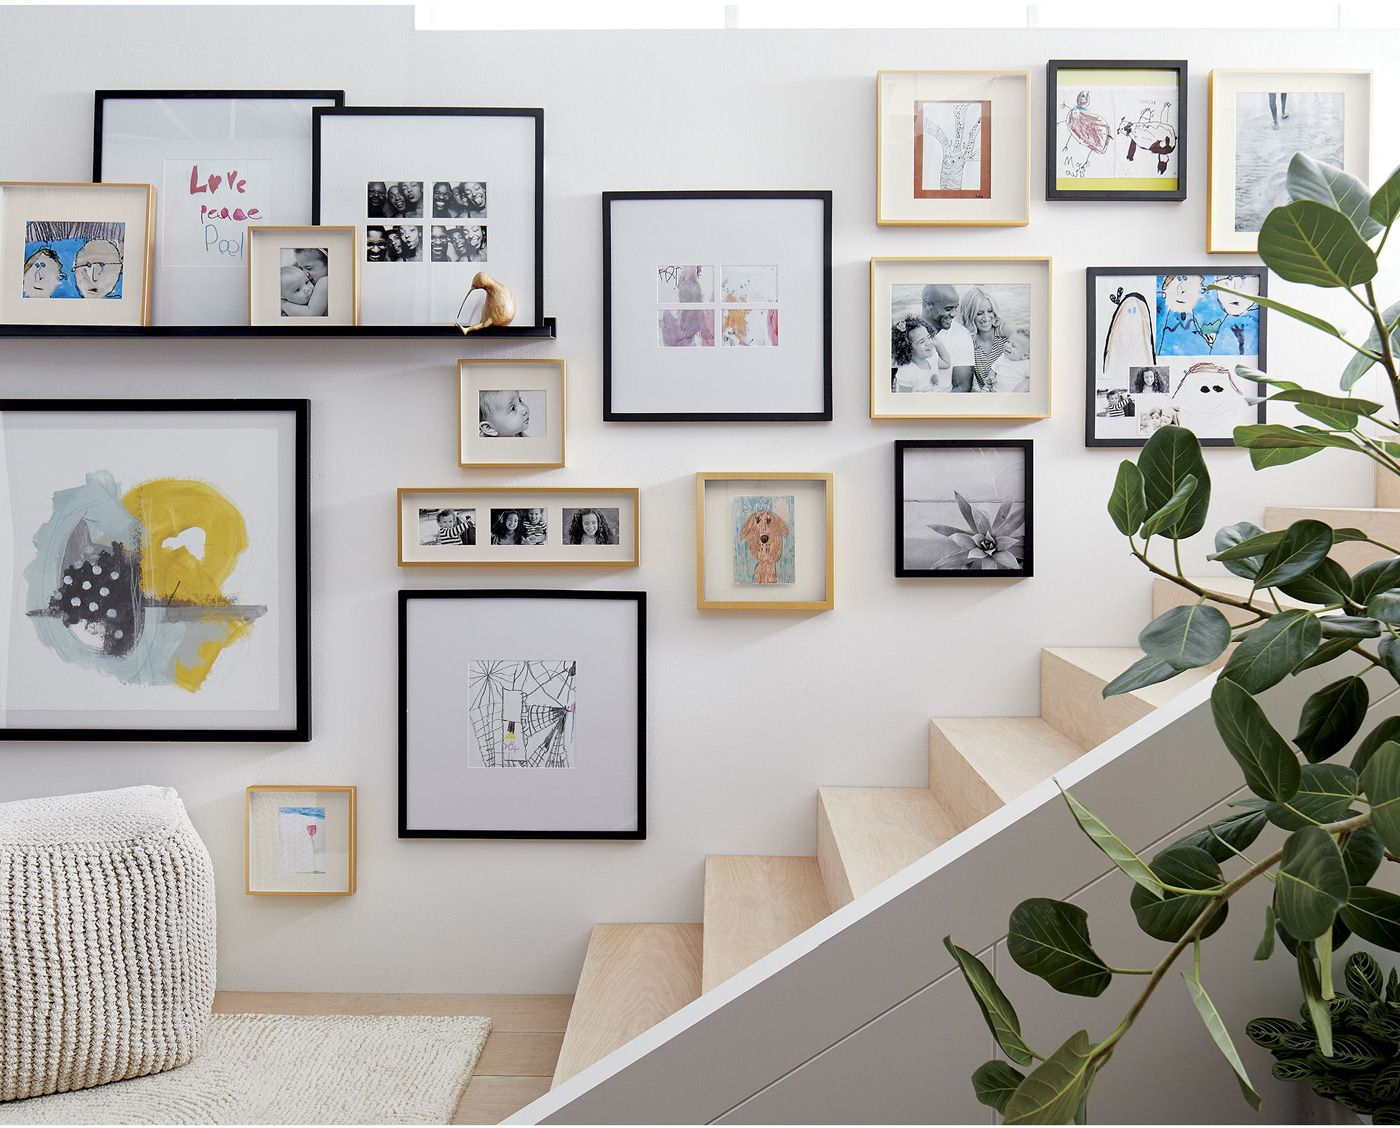 How To Hang Pictures Without Nails Frames On Wall Gallery Wall